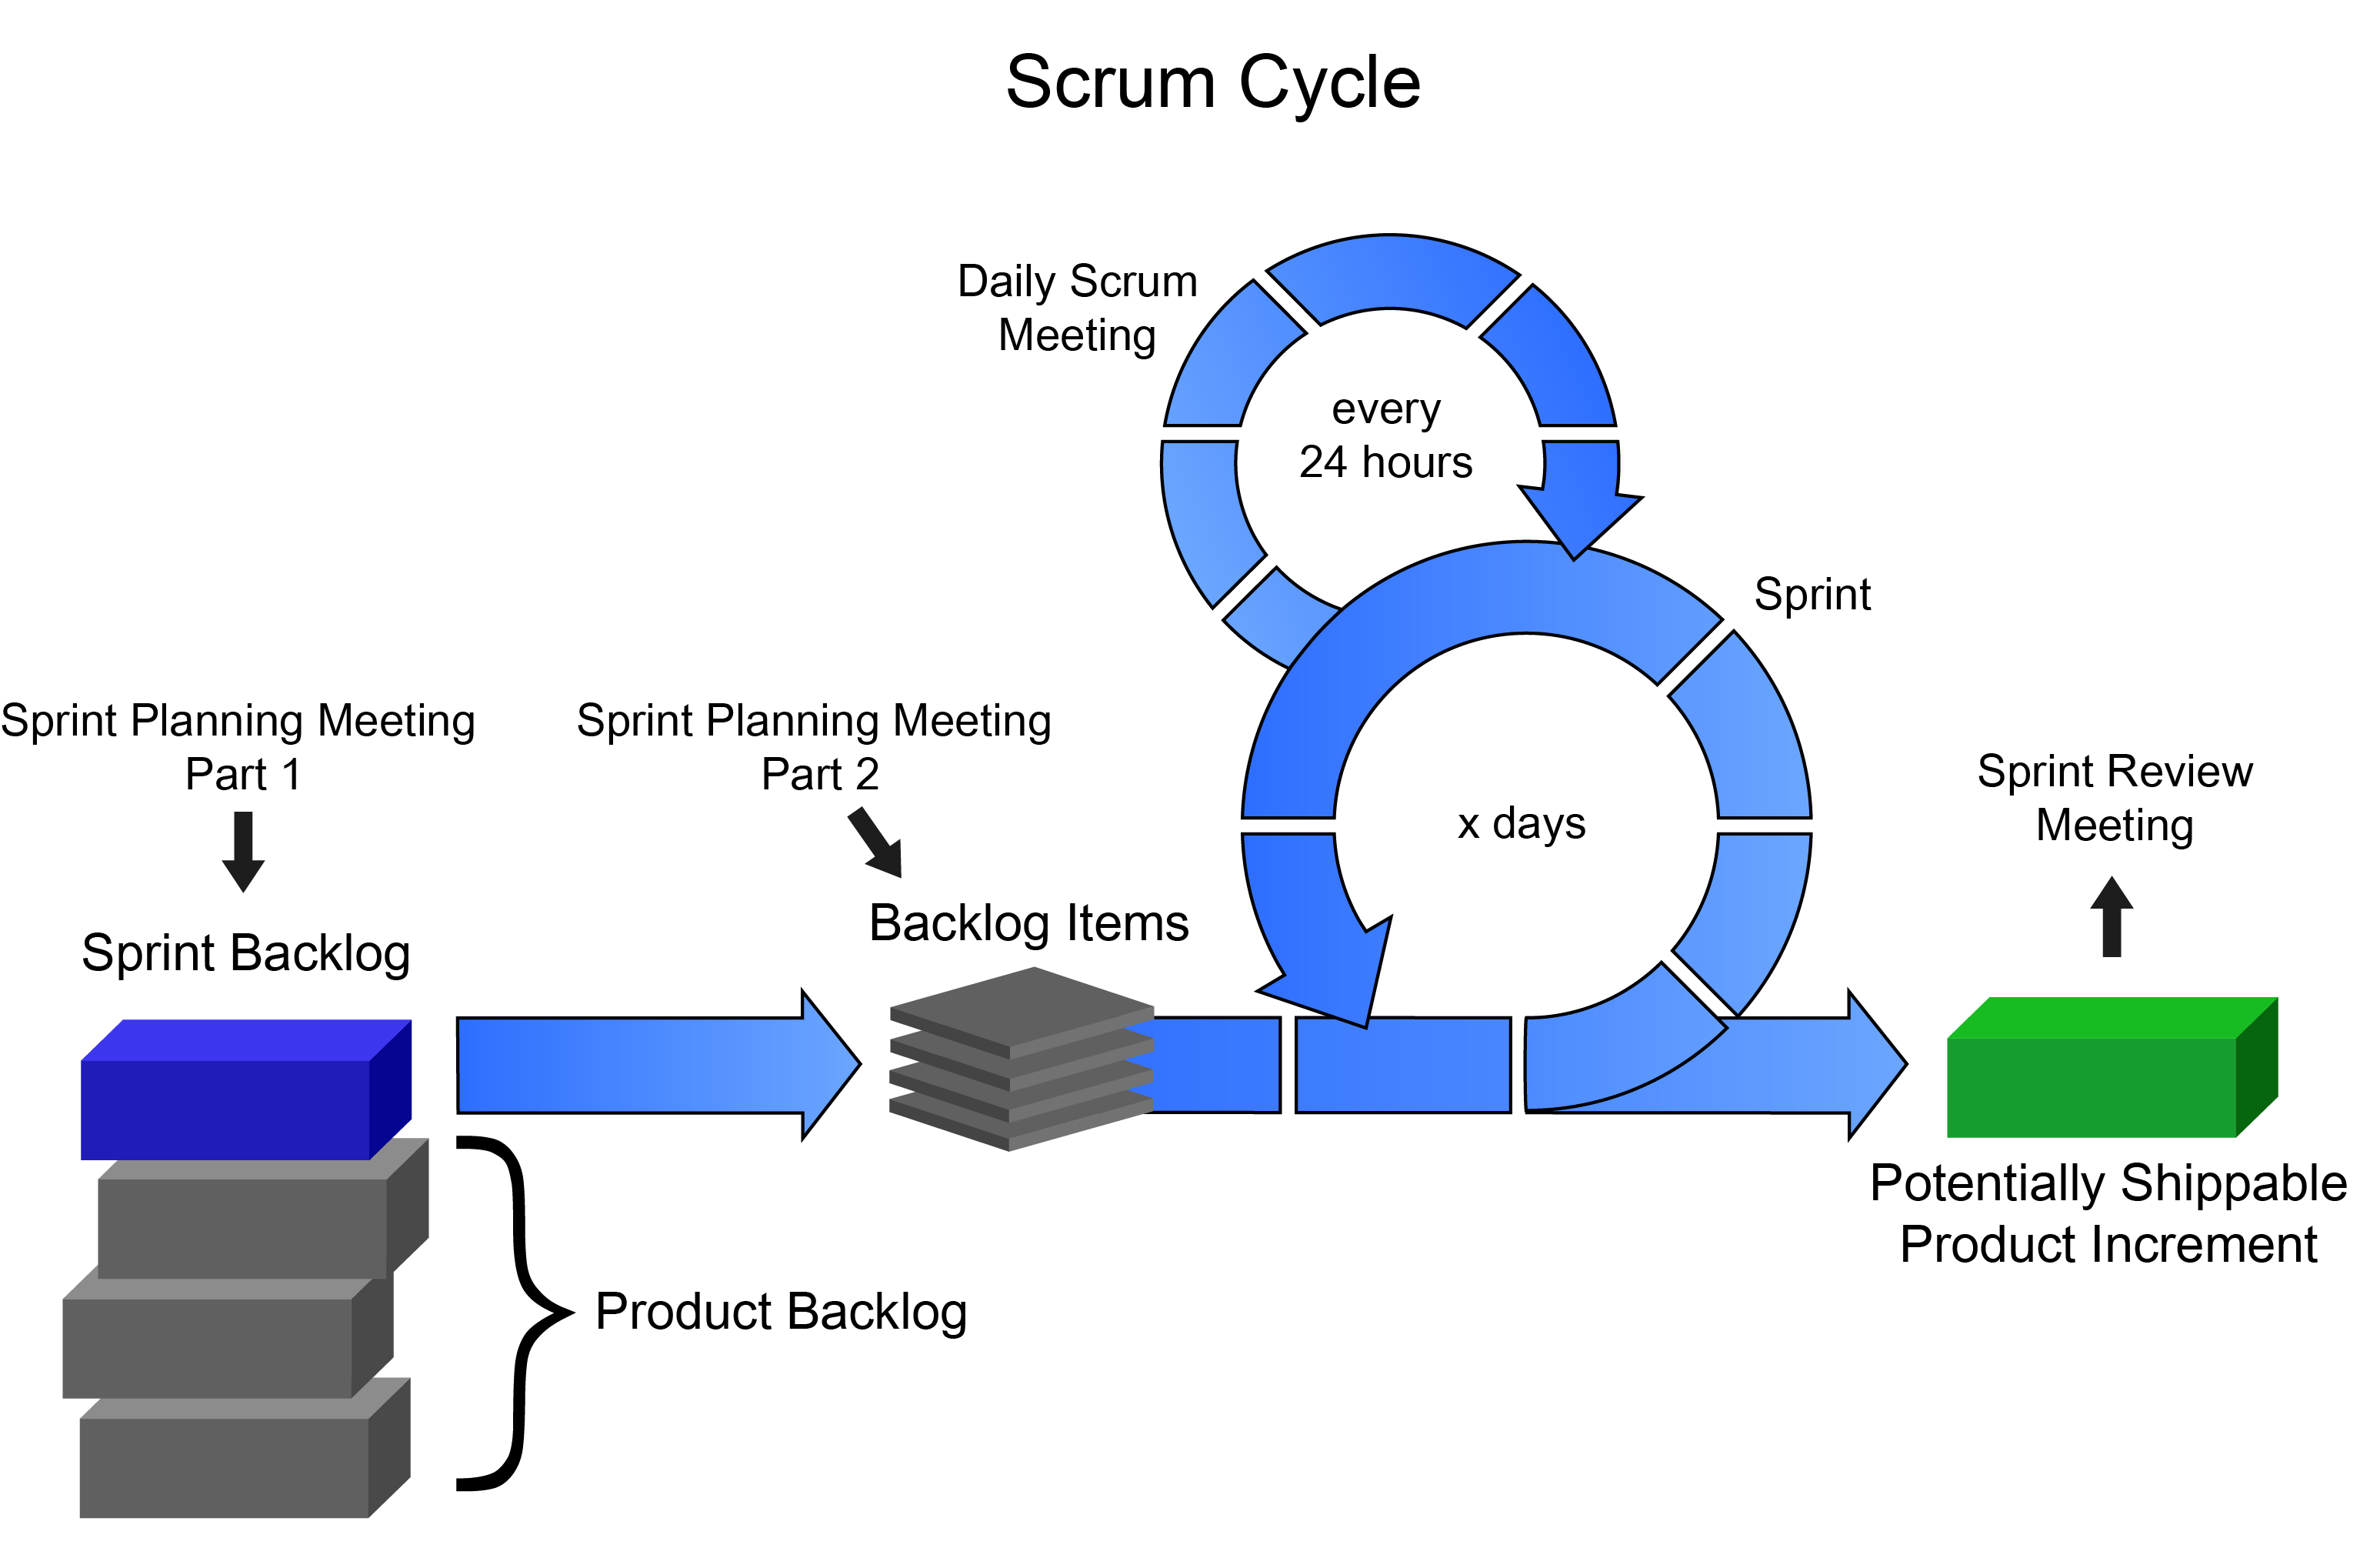 scrum process overview diagram toyota wiring harness cycle related keywords long tail